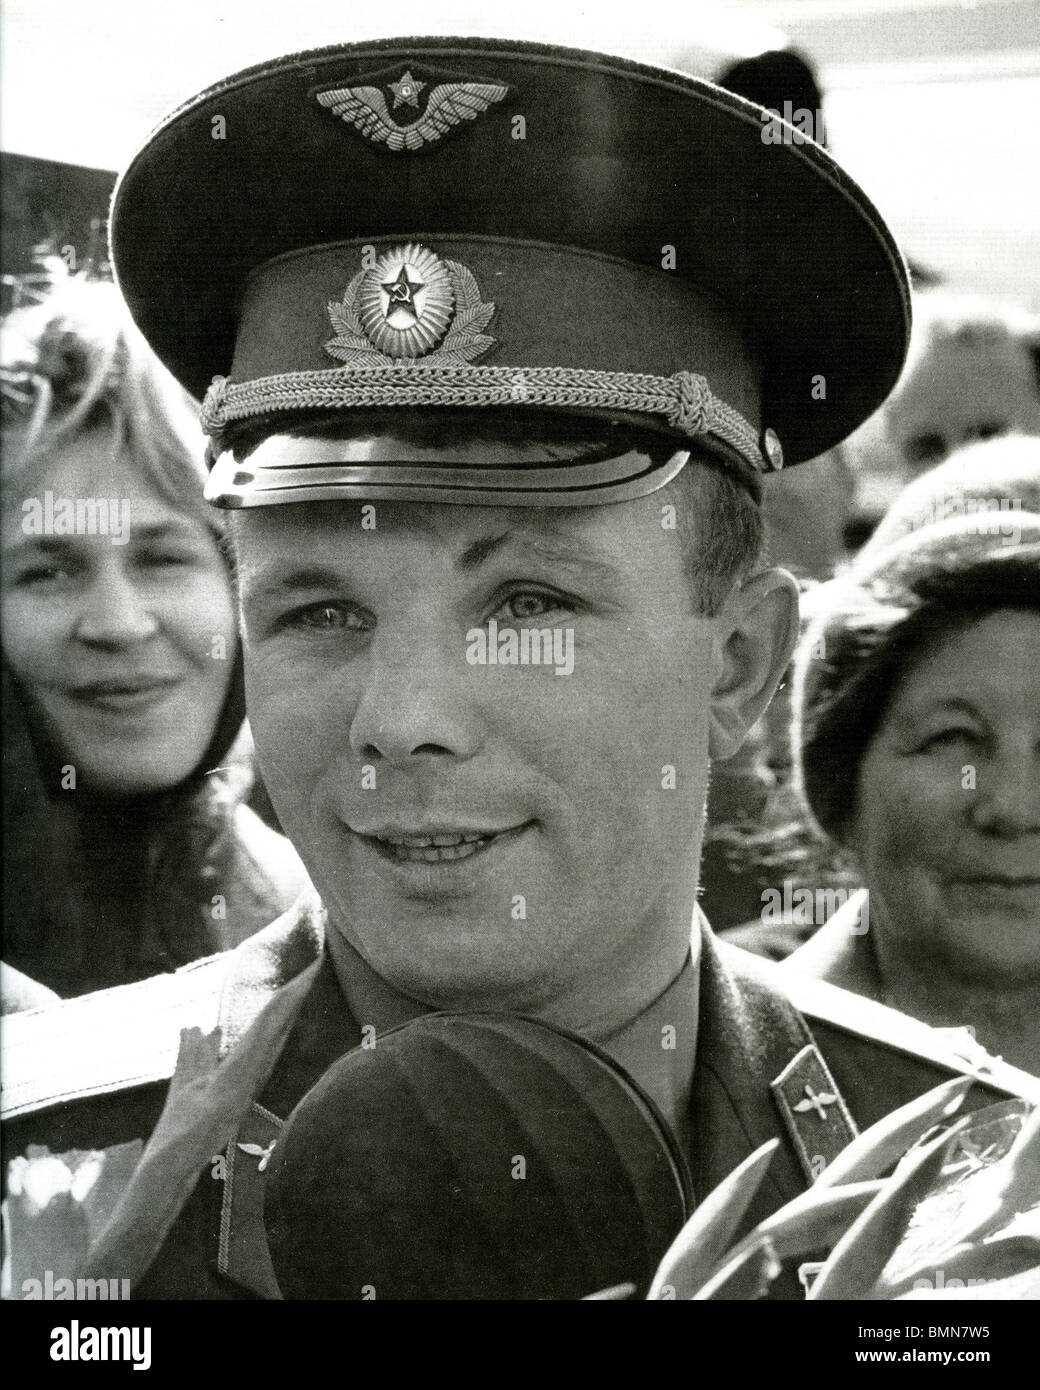 YURI GAGARIN  (1934-1968) - Soviet cosmonaut who was the first man to orbit the earth in outer space - Stock Image